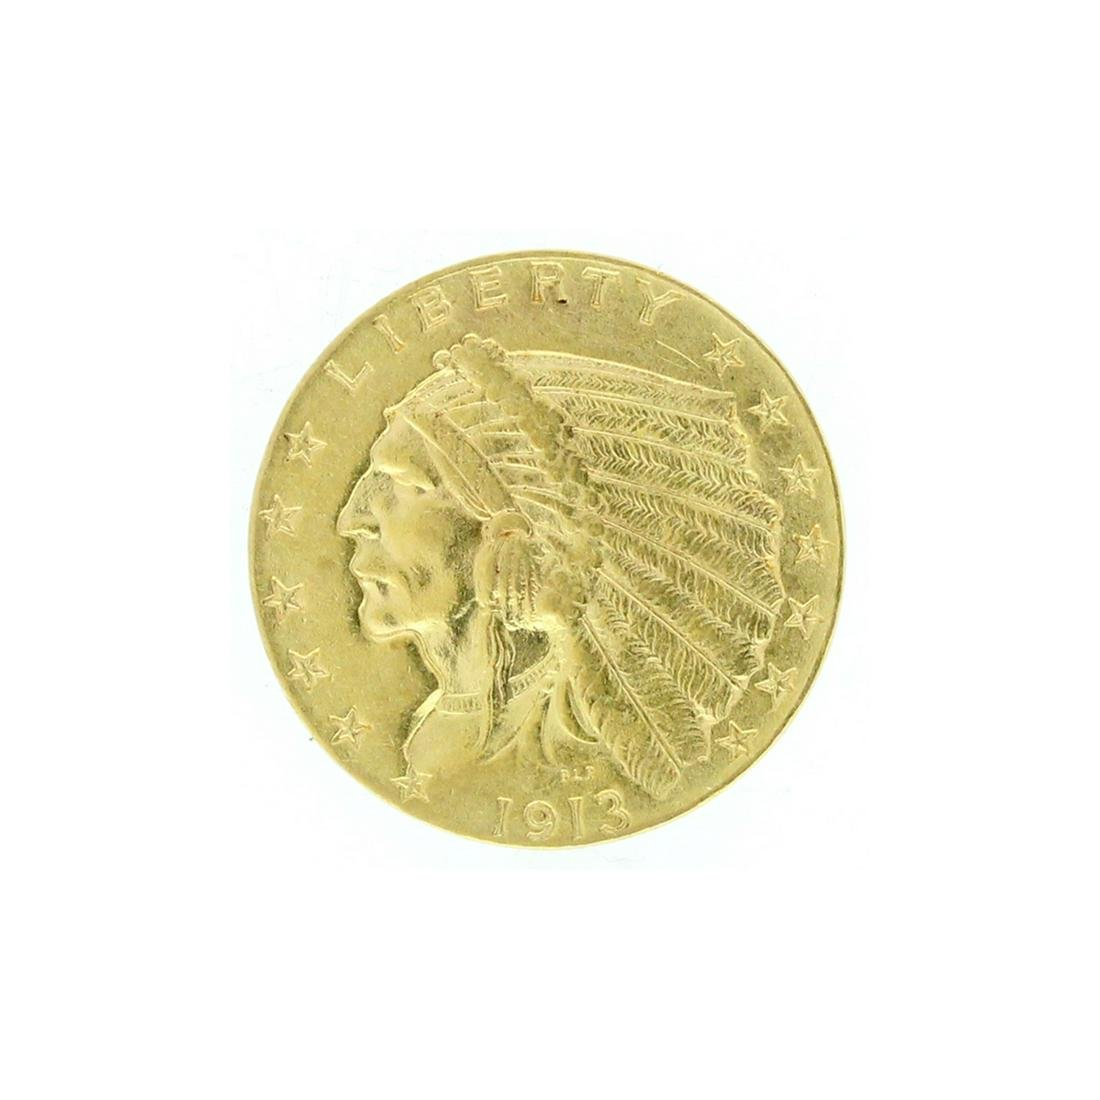 Rare 1913 $2.50 Indian Head Gold Coin Great Investment